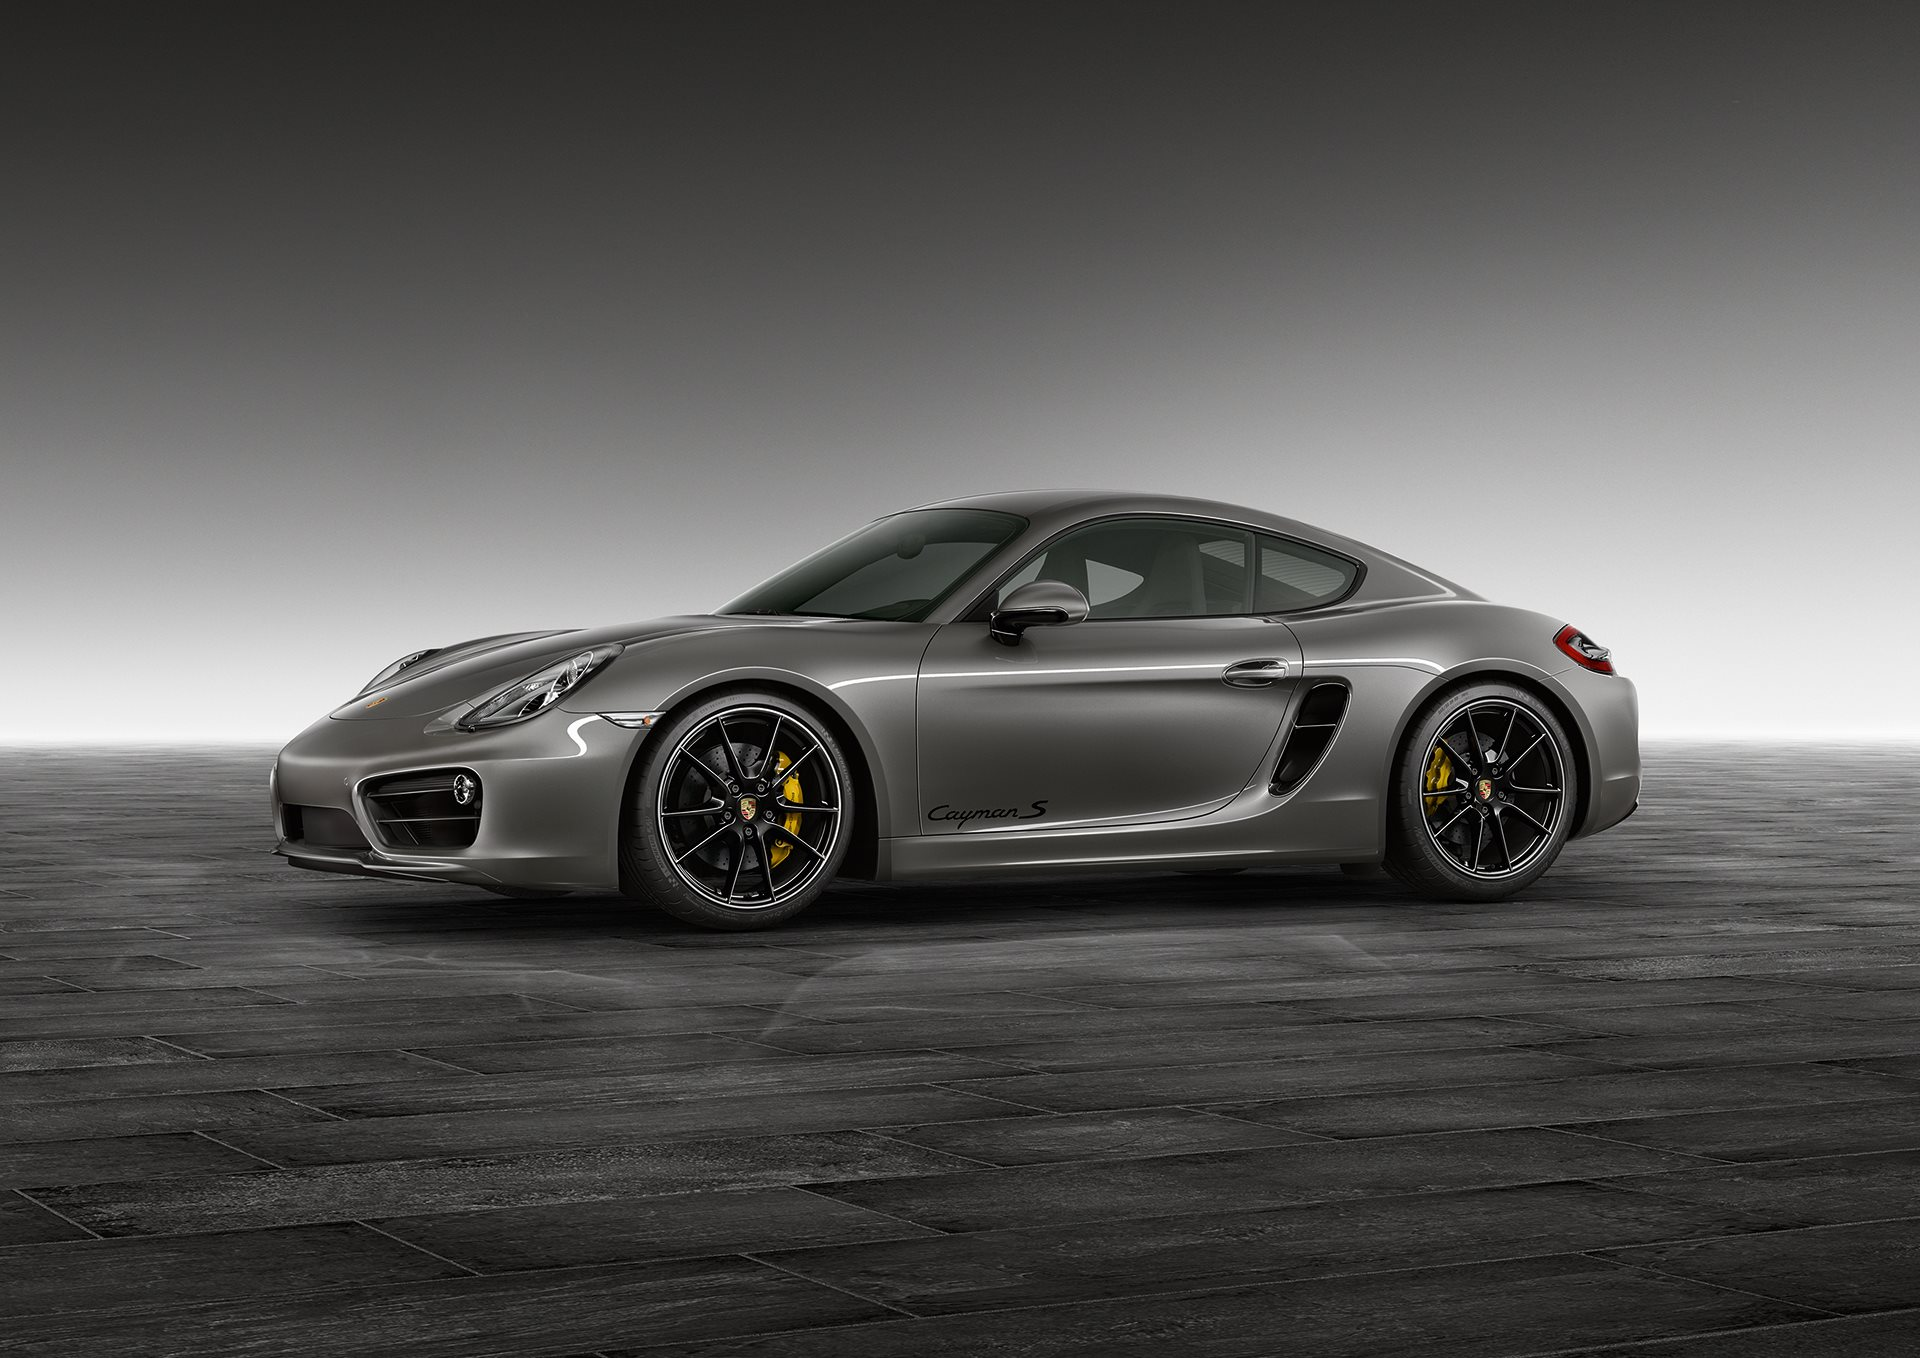 official agate grey metallic porsche exclusive cayman s gtspirit. Black Bedroom Furniture Sets. Home Design Ideas